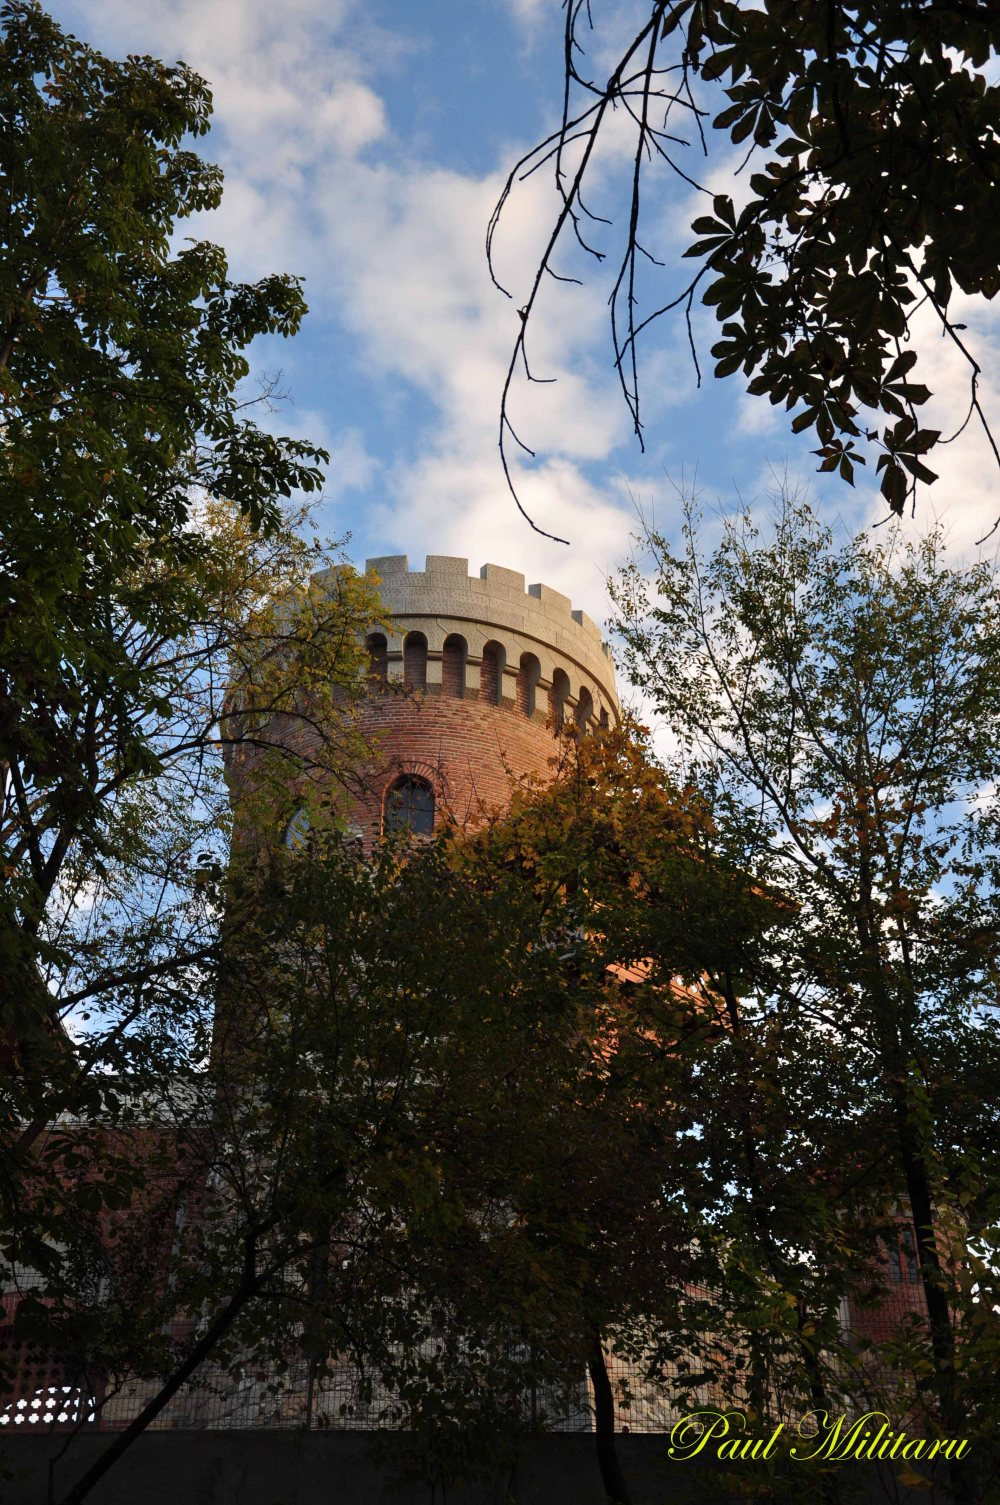 water tower The Fortress of Țepeș Voda (1906)